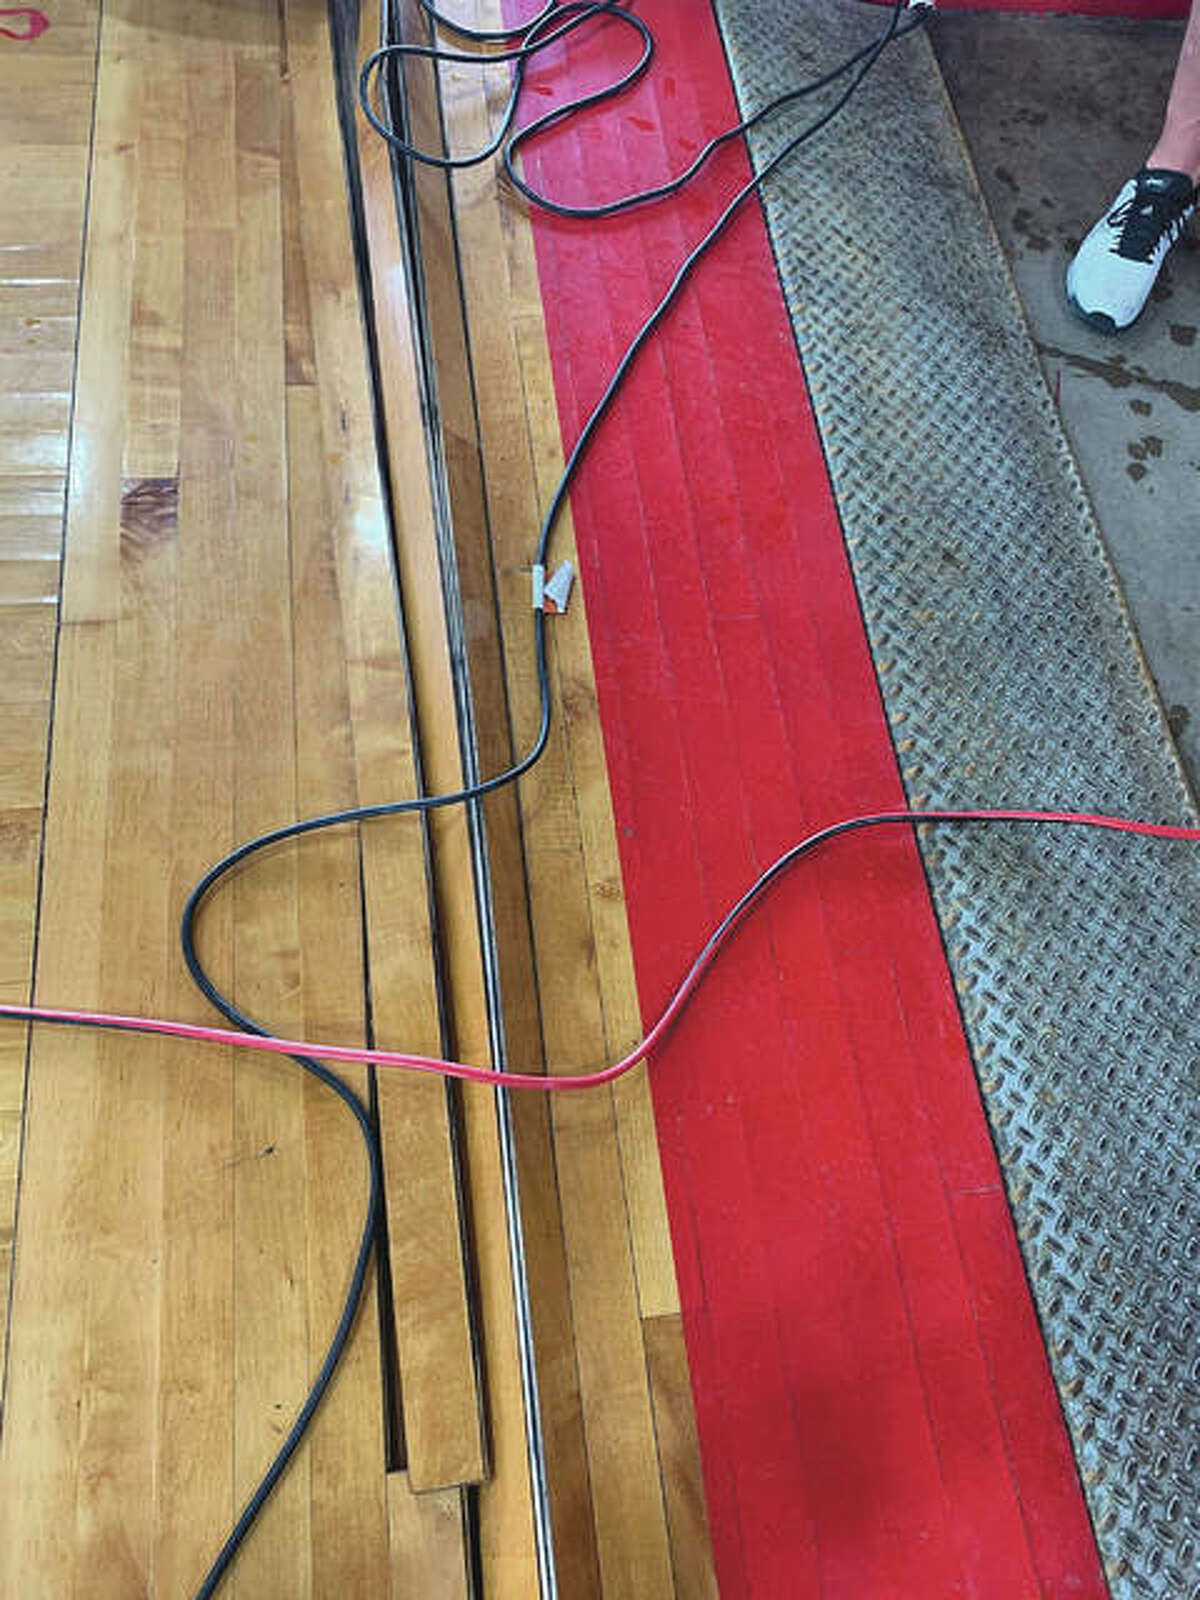 The wood floor of the JHS Bowl sustained water damage and likely needs to be replaced. Jacksonville School District 117 is considering giving community members a chance to buy pieces of the old floor.